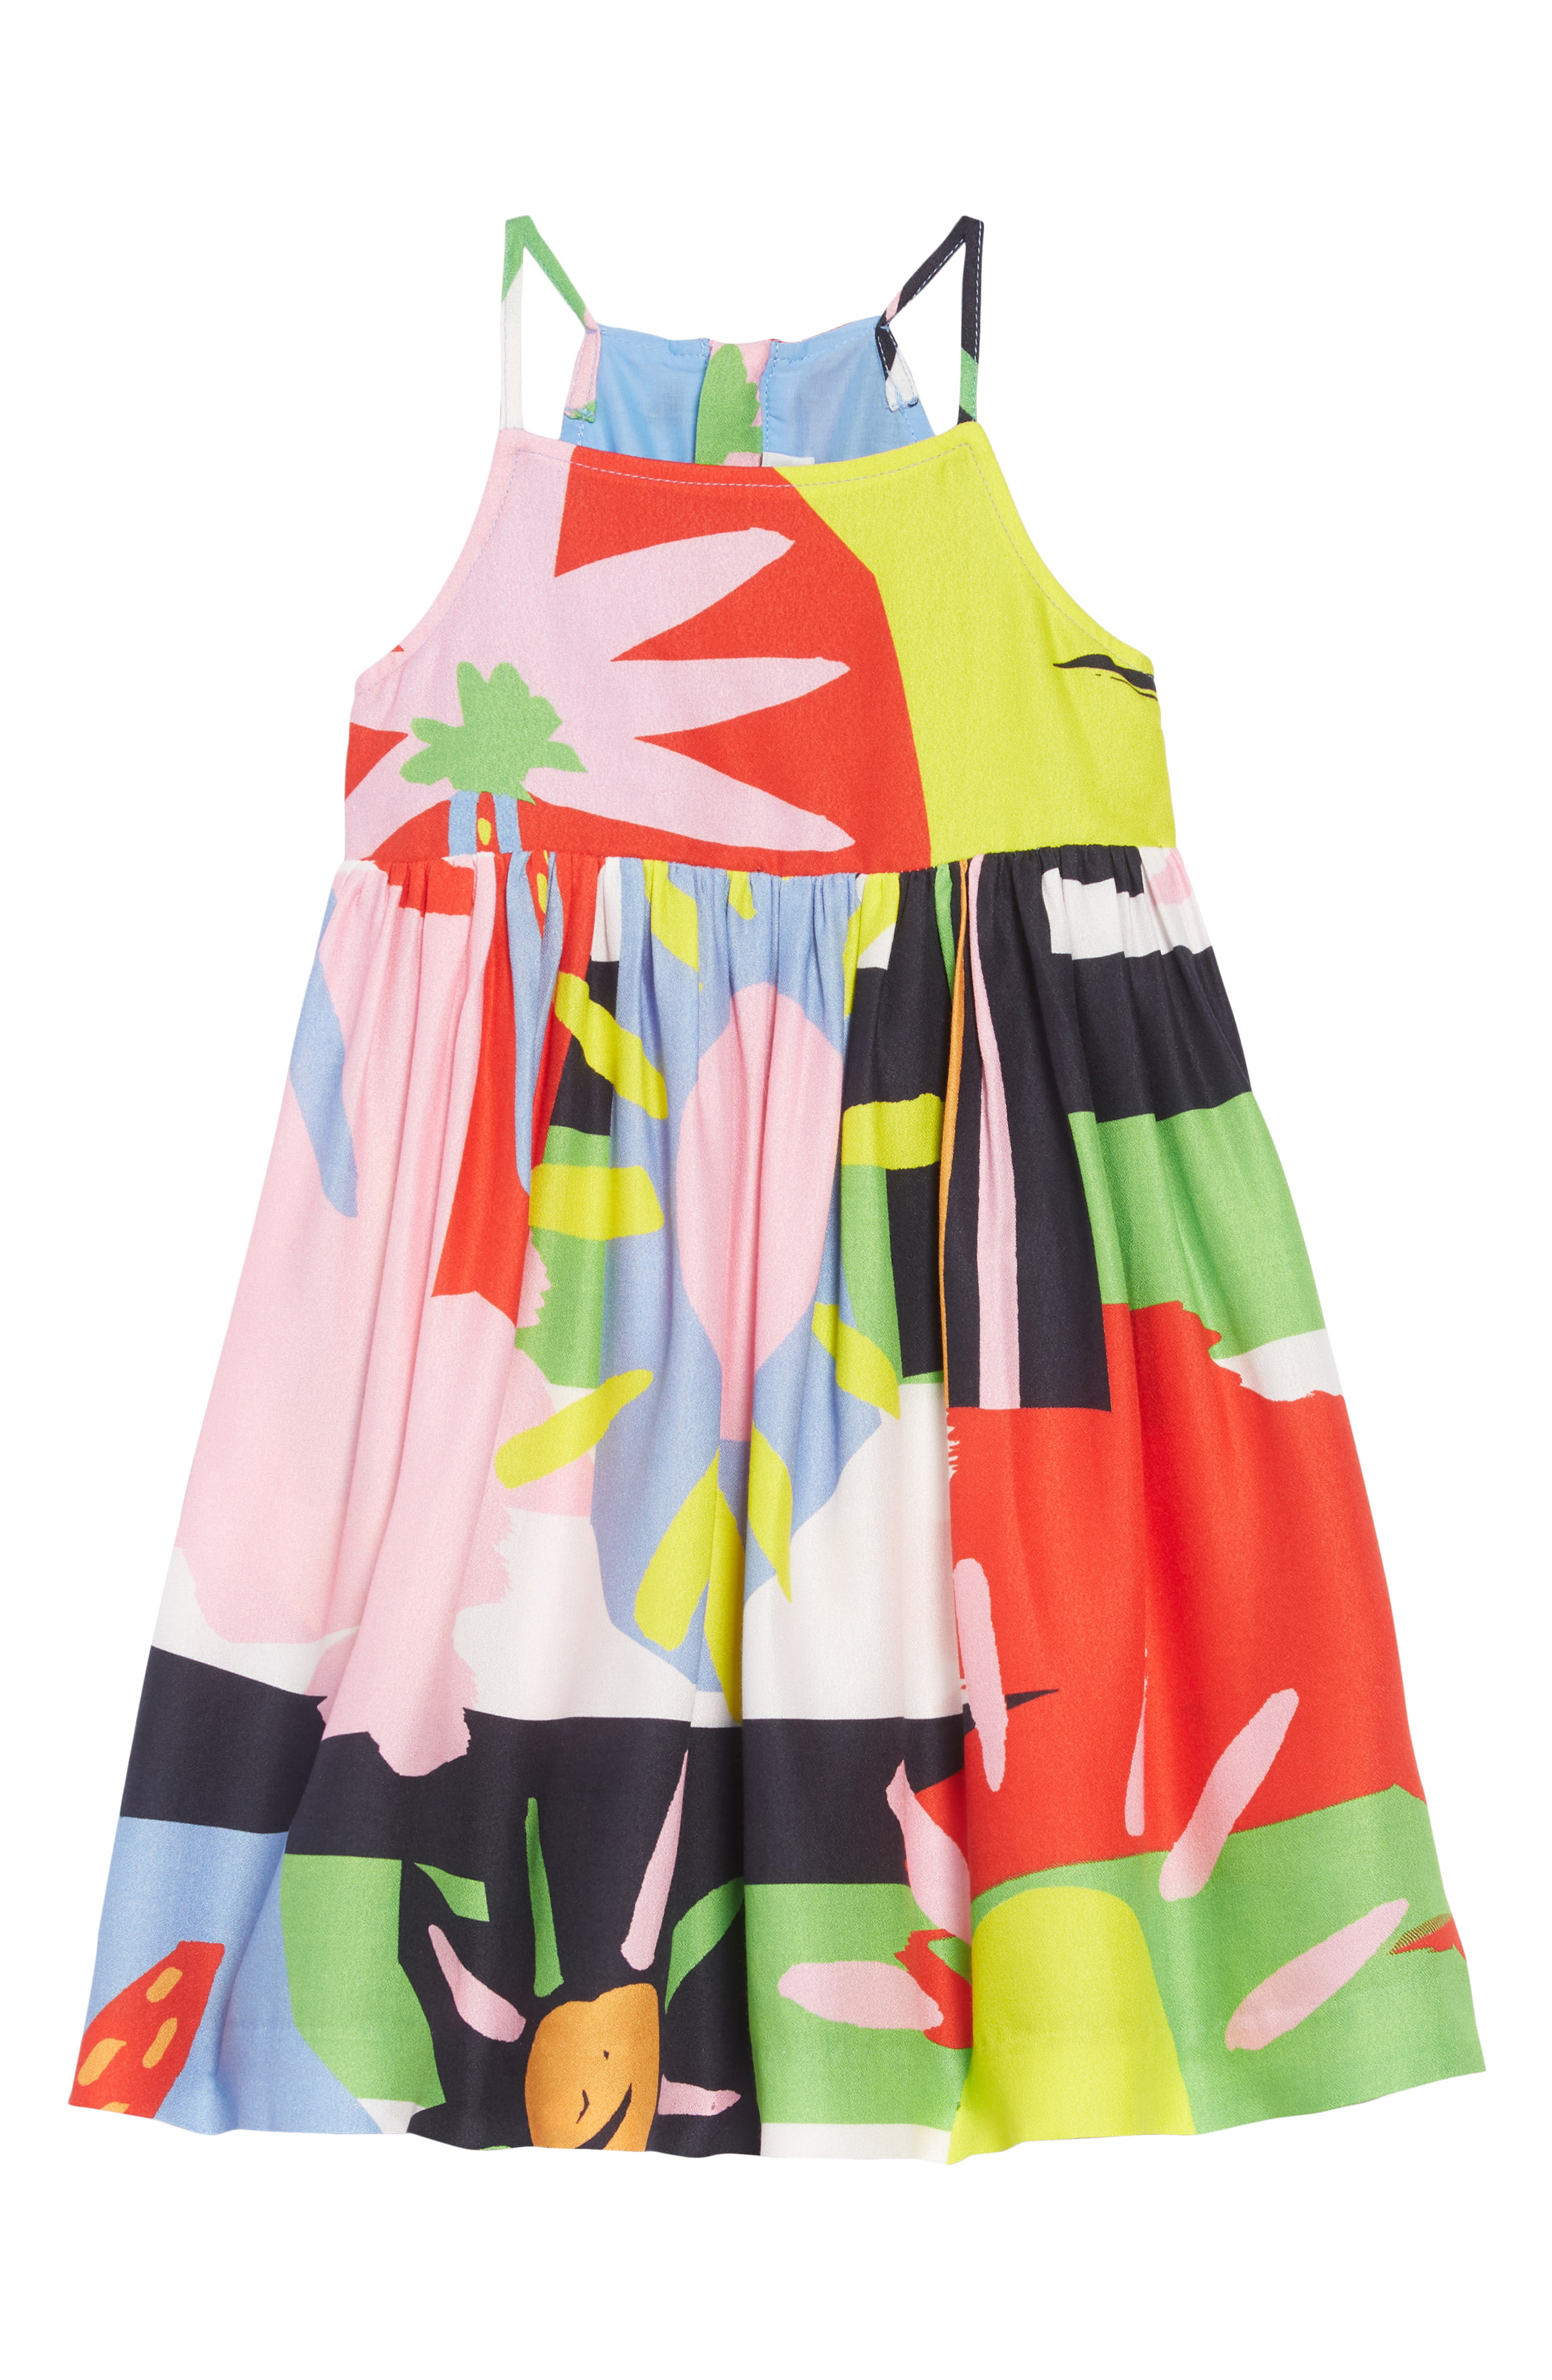 9ff6b594ea296 Girl's Stella Mccartney Abstract Print Dress, Size 14Y - Pink ...